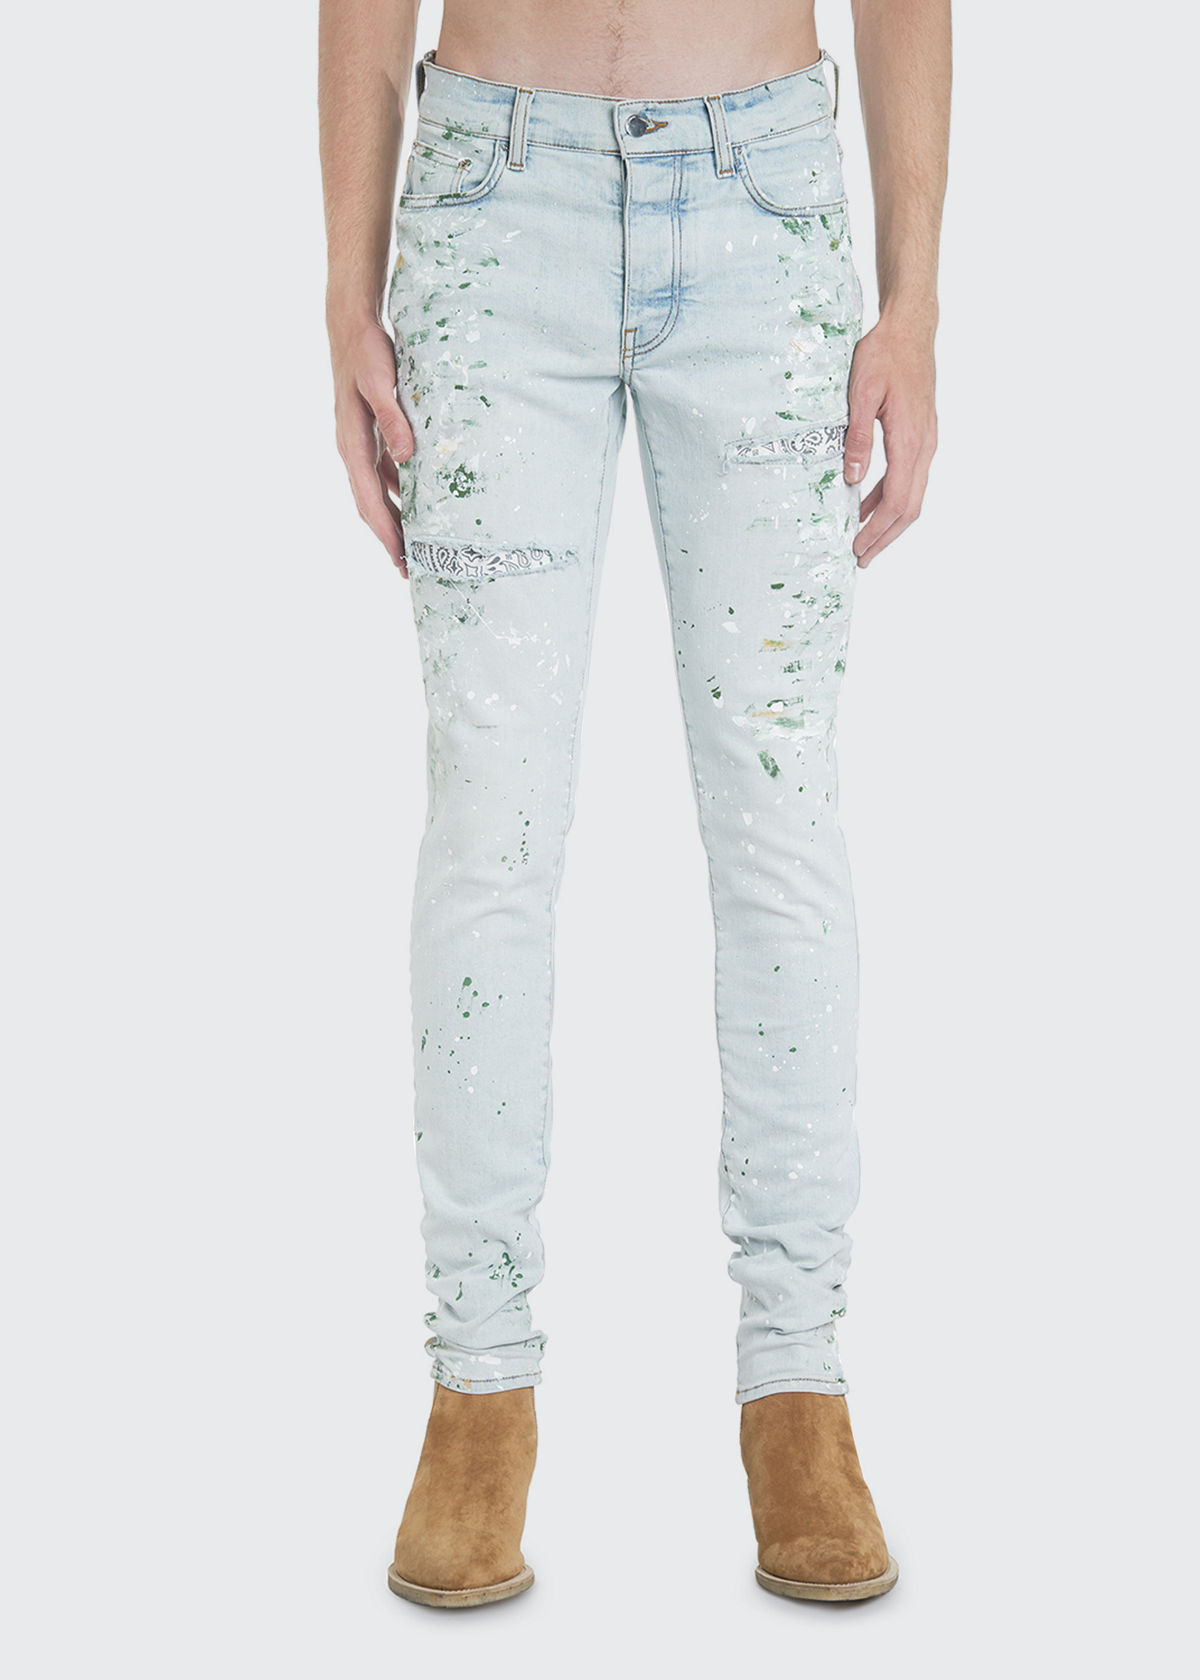 Amiri MEN'S HAND-PAINTED DISTRESSED SKINNY JEANS